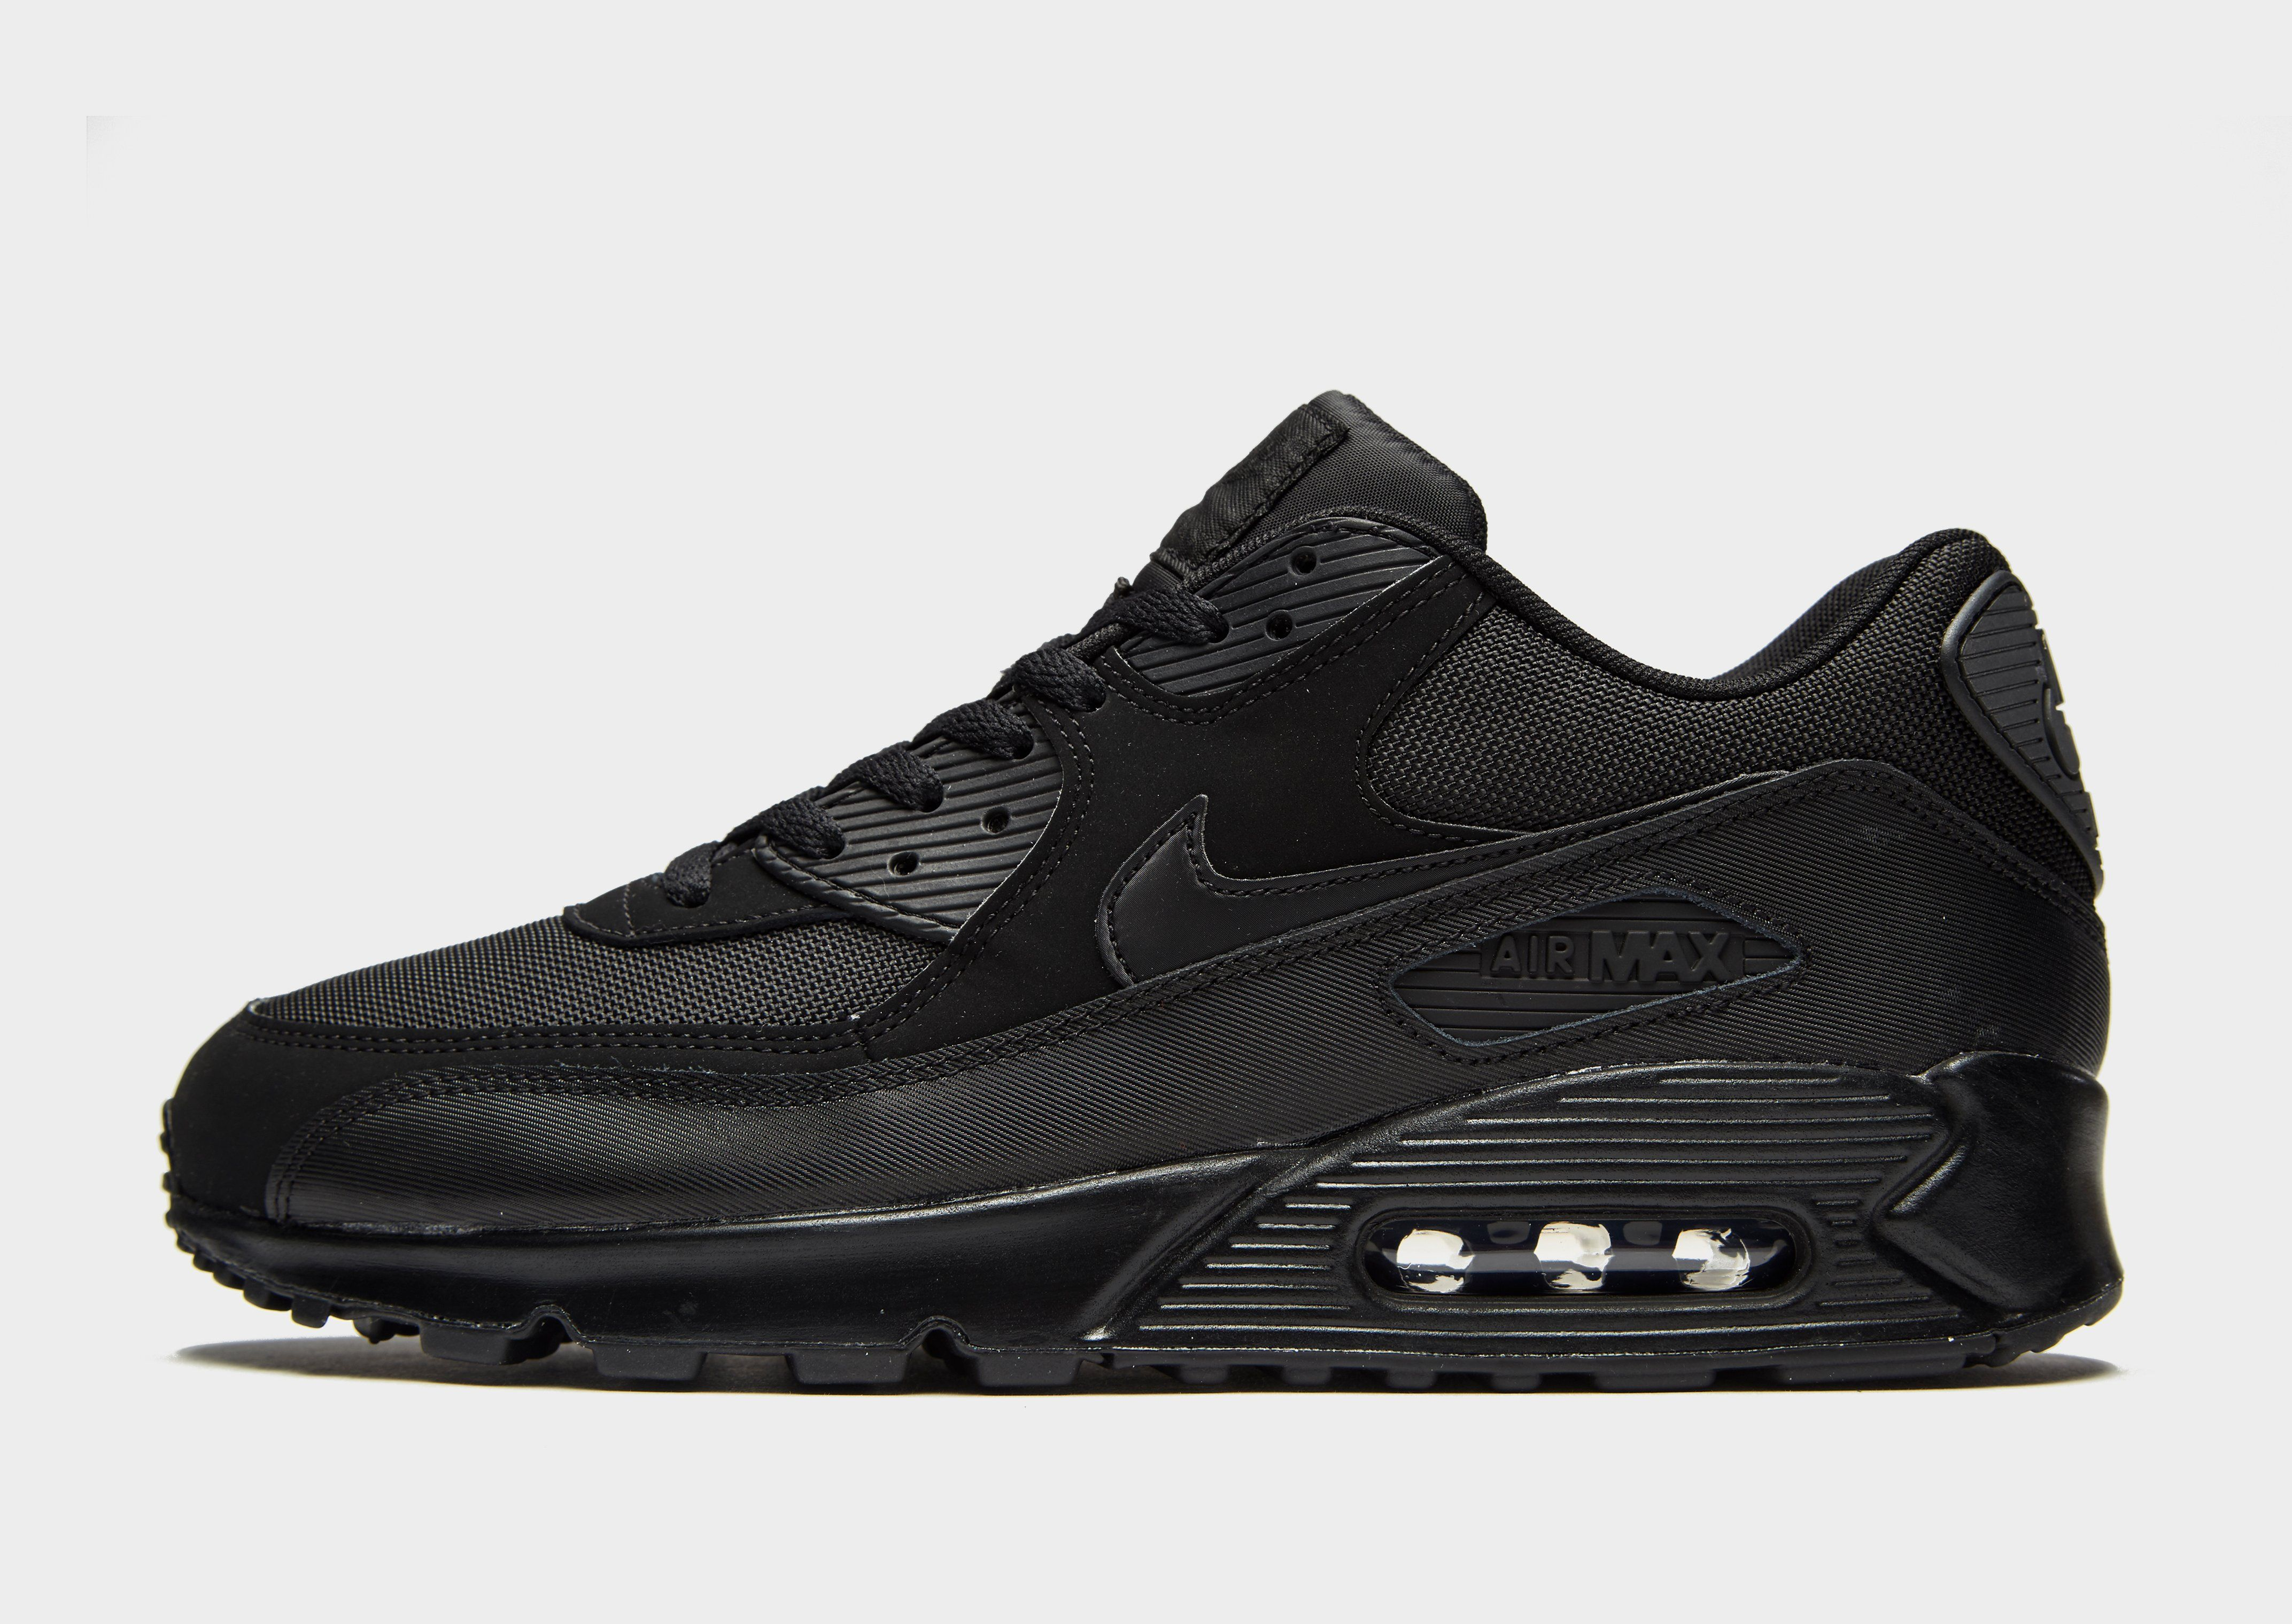 premium selection b1974 4b898 NIKE Nike Air Max 90 Essential Men s Shoe ...